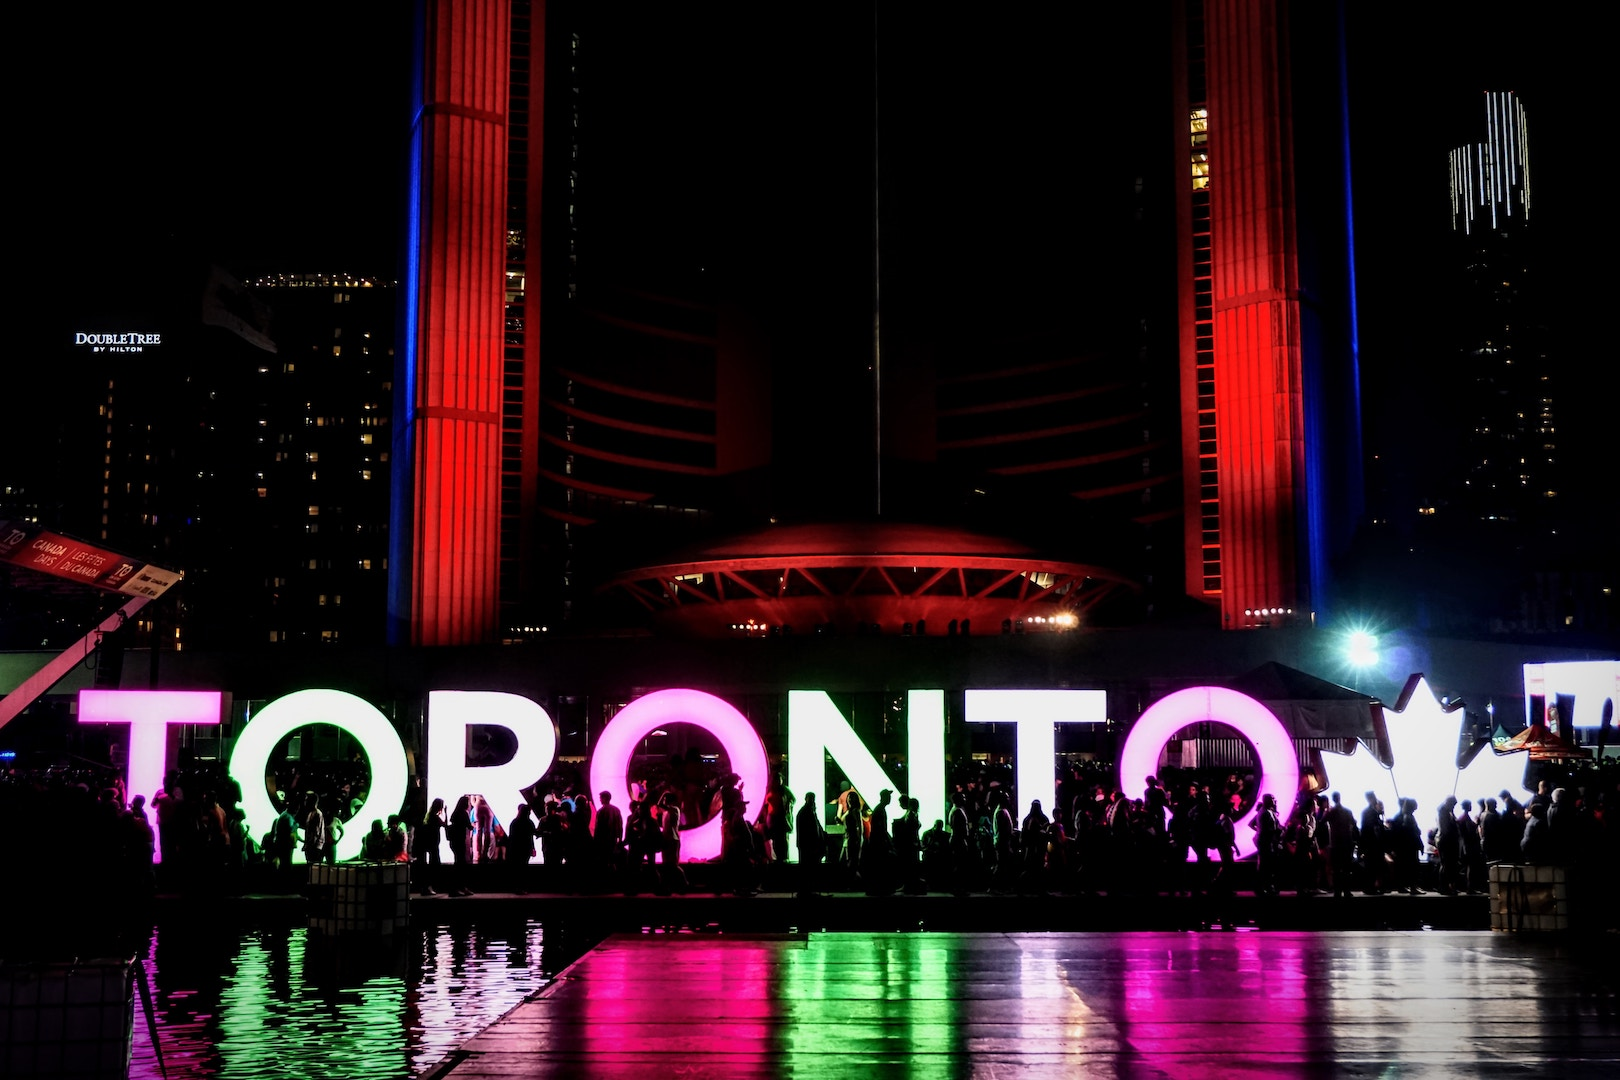 image of Toronto City Hall at night with LED Toronto sign and fireworks